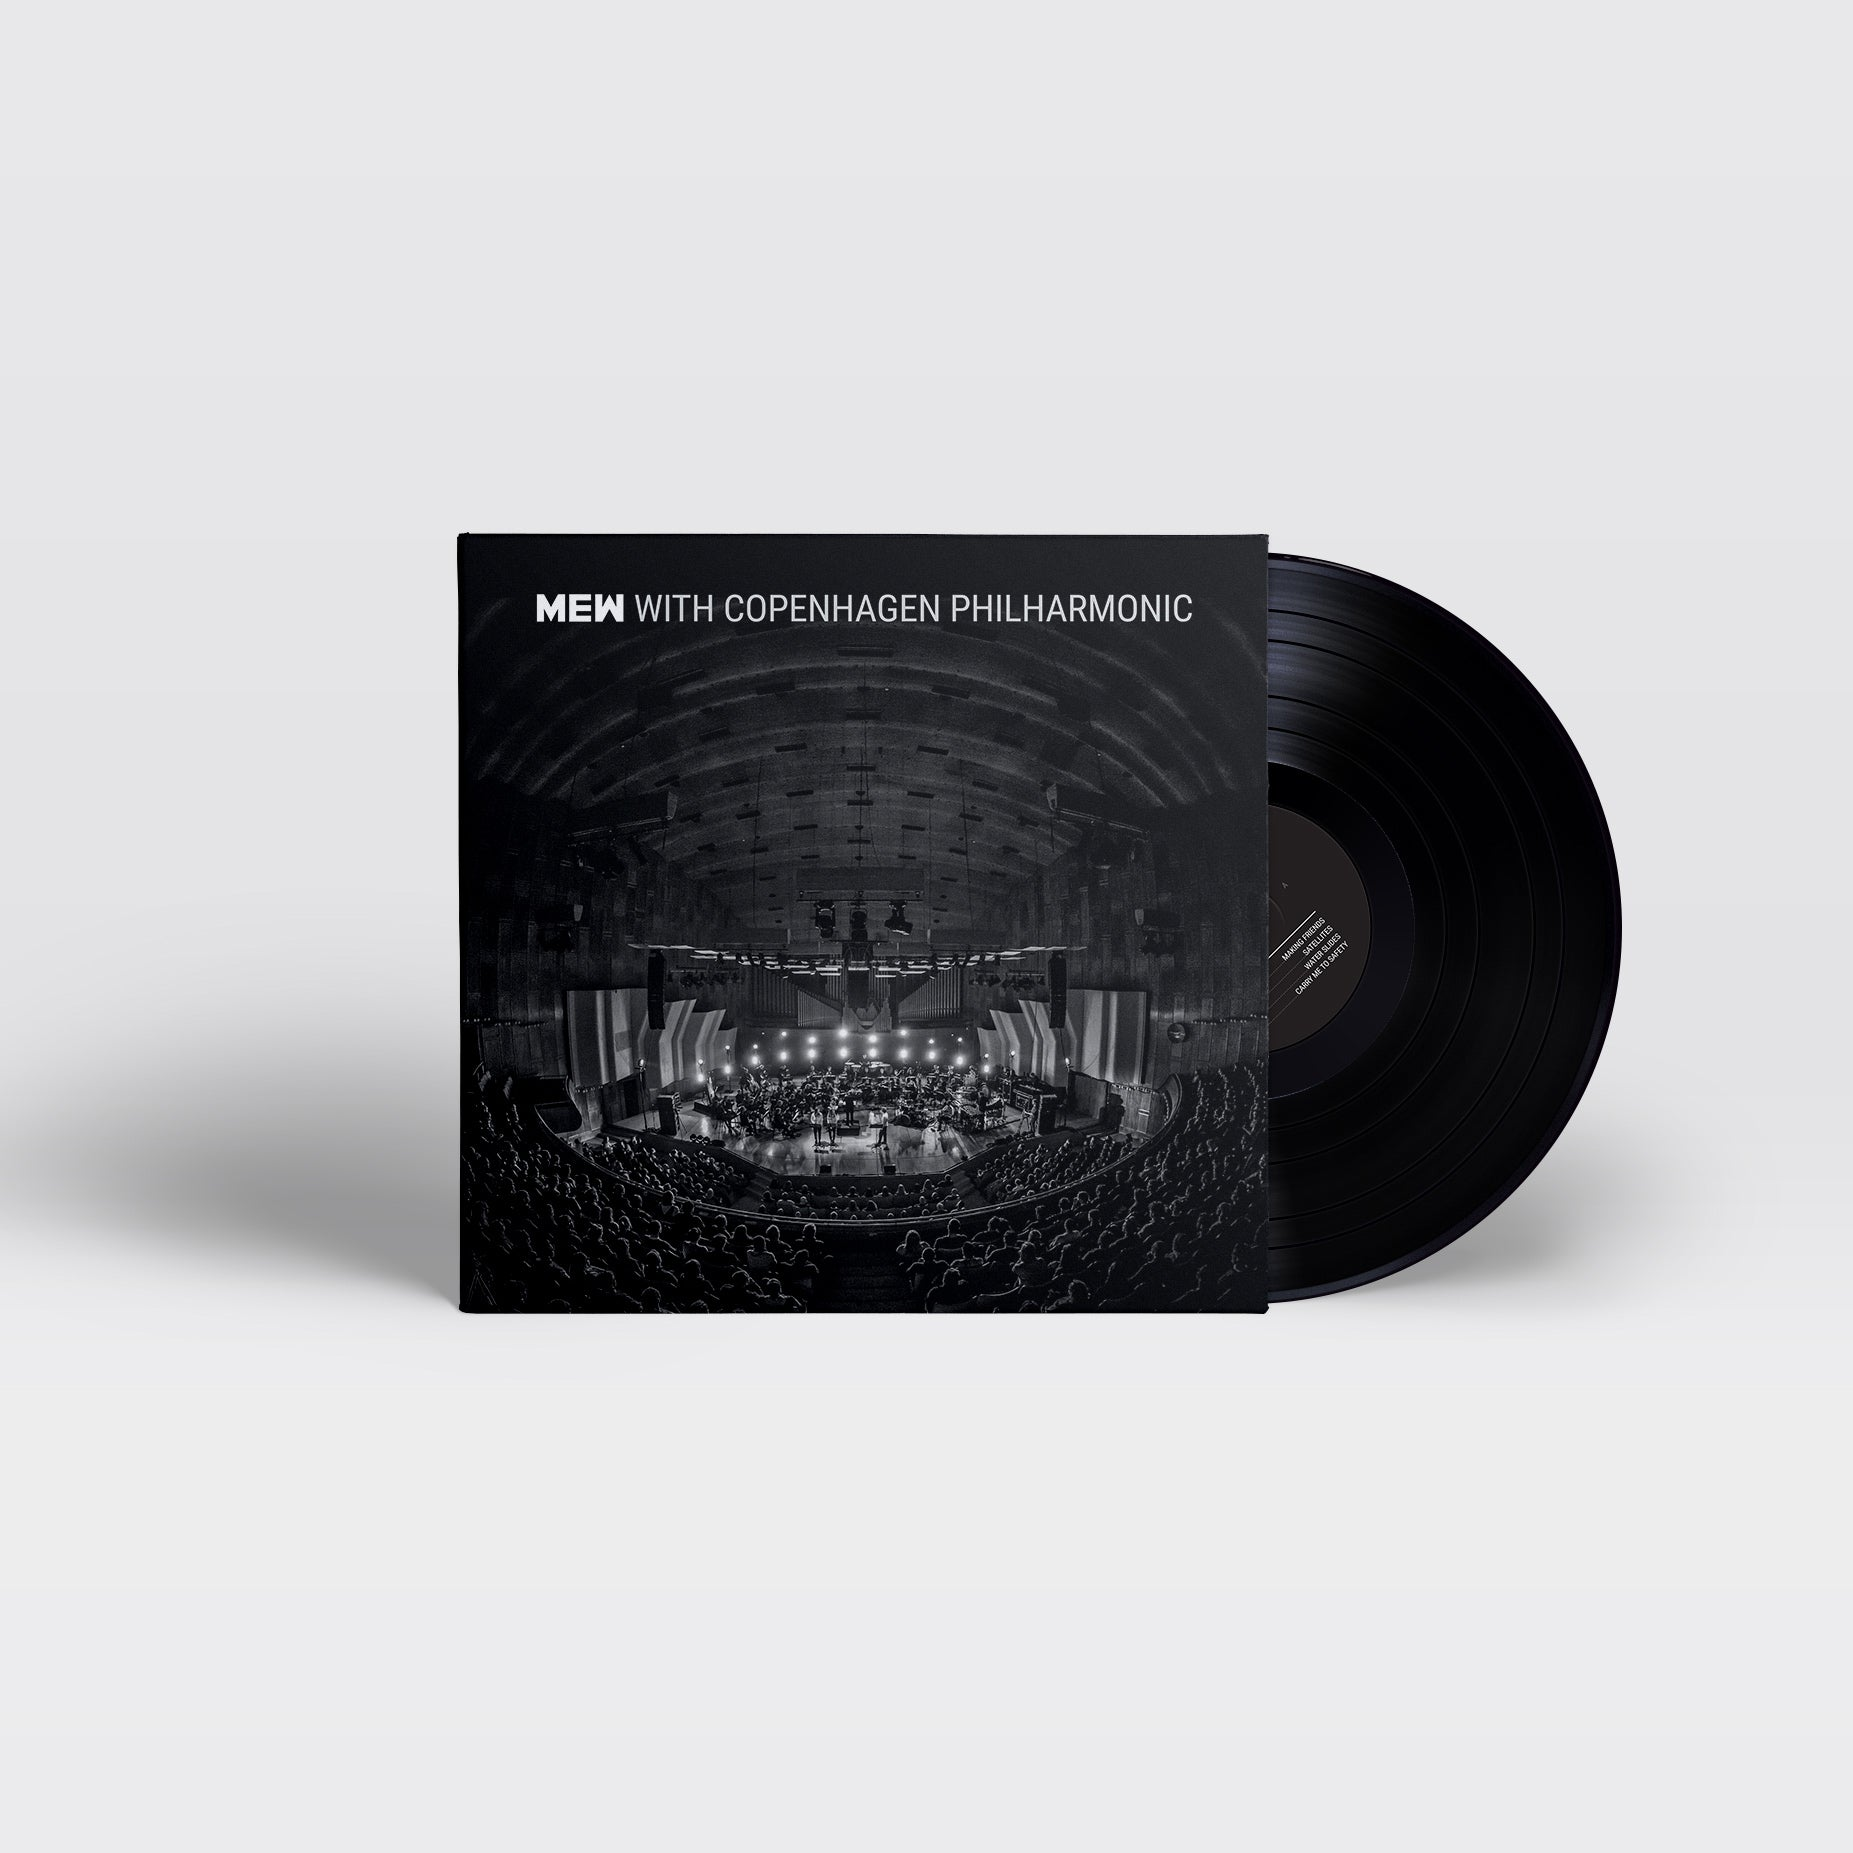 "With Copenhagen Philharmonic (12"" Heavyweight LP)"